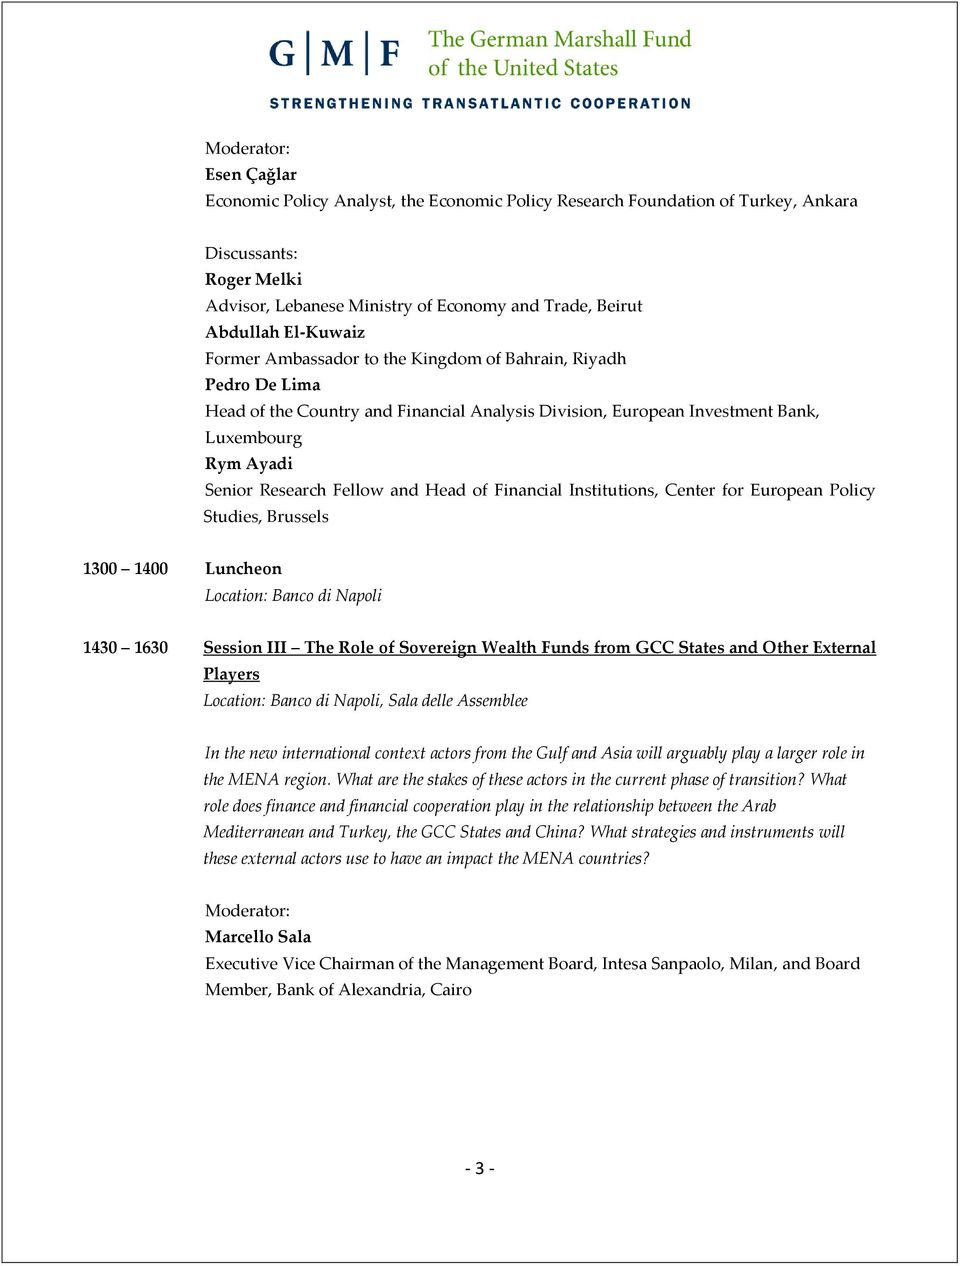 of Financial Institutions, Center for European Policy Studies, Brussels 1300 1400 Luncheon Location: Banco di Napoli 1430 1630 Session III The Role of Sovereign Wealth Funds from GCC States and Other